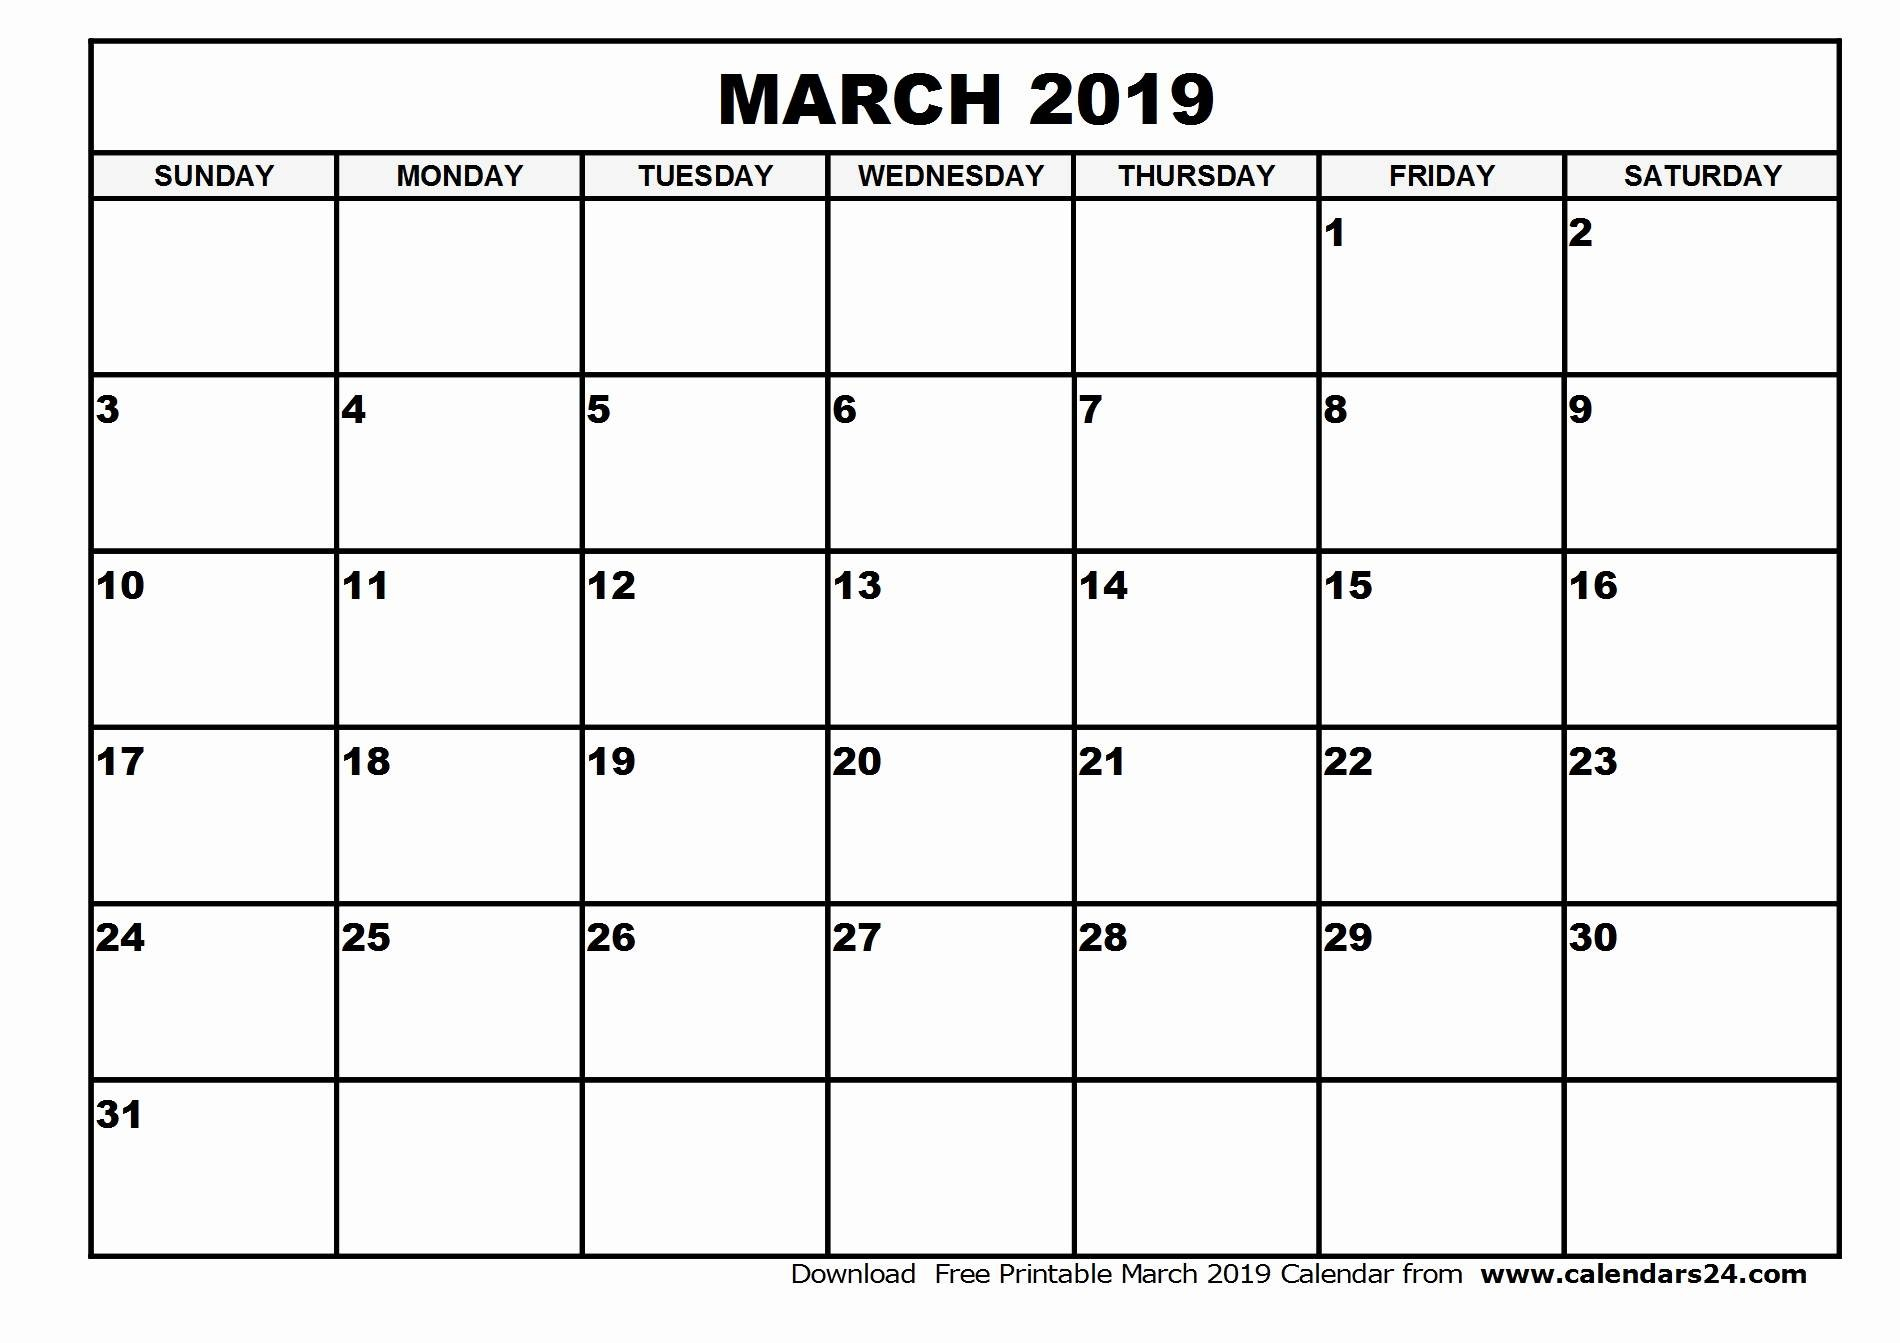 Blank March 2019 Calendar Templates Printable Download - July 2019 with regard to Cute Blank Monthly Calendar Template